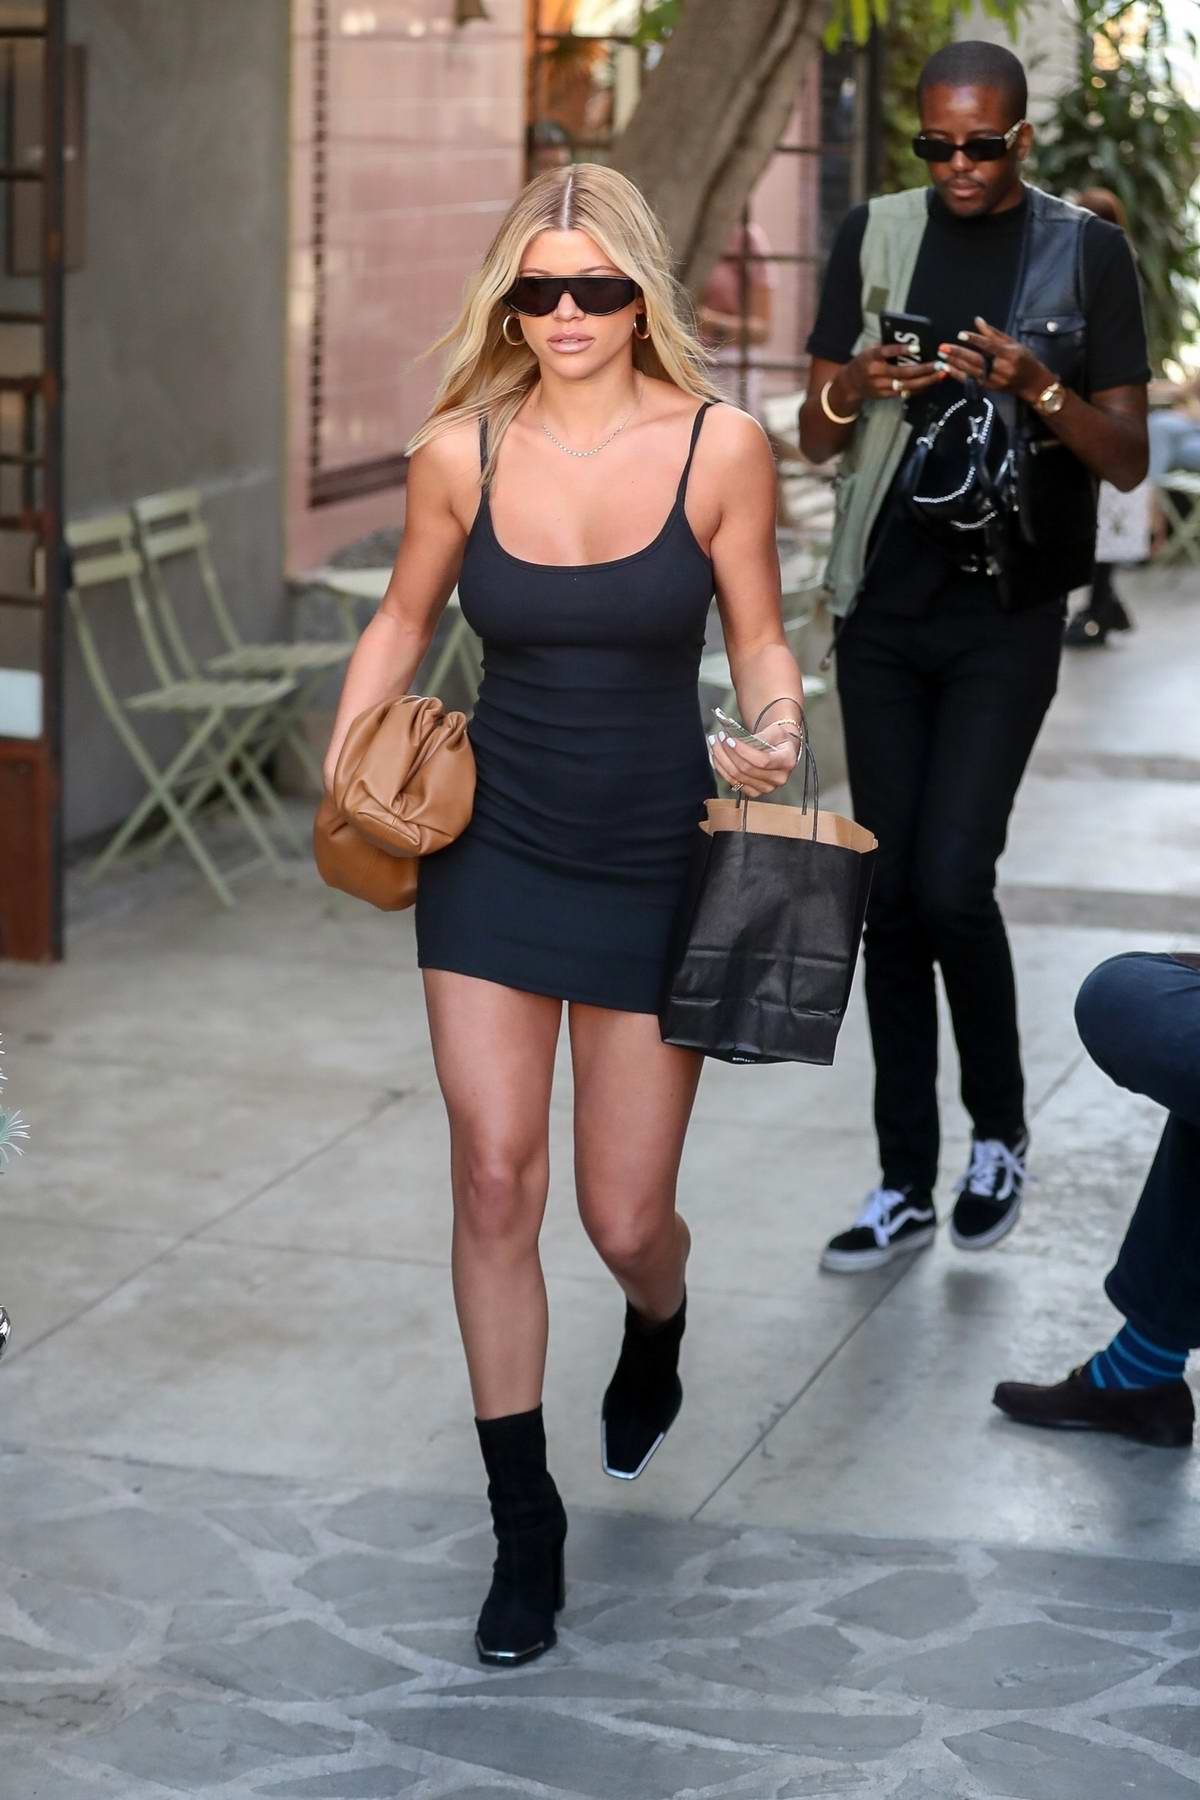 Sofia Richie looks stunning in a form-fitting black mini dress while visiting the Nine Zero One Salon in Los Angeles